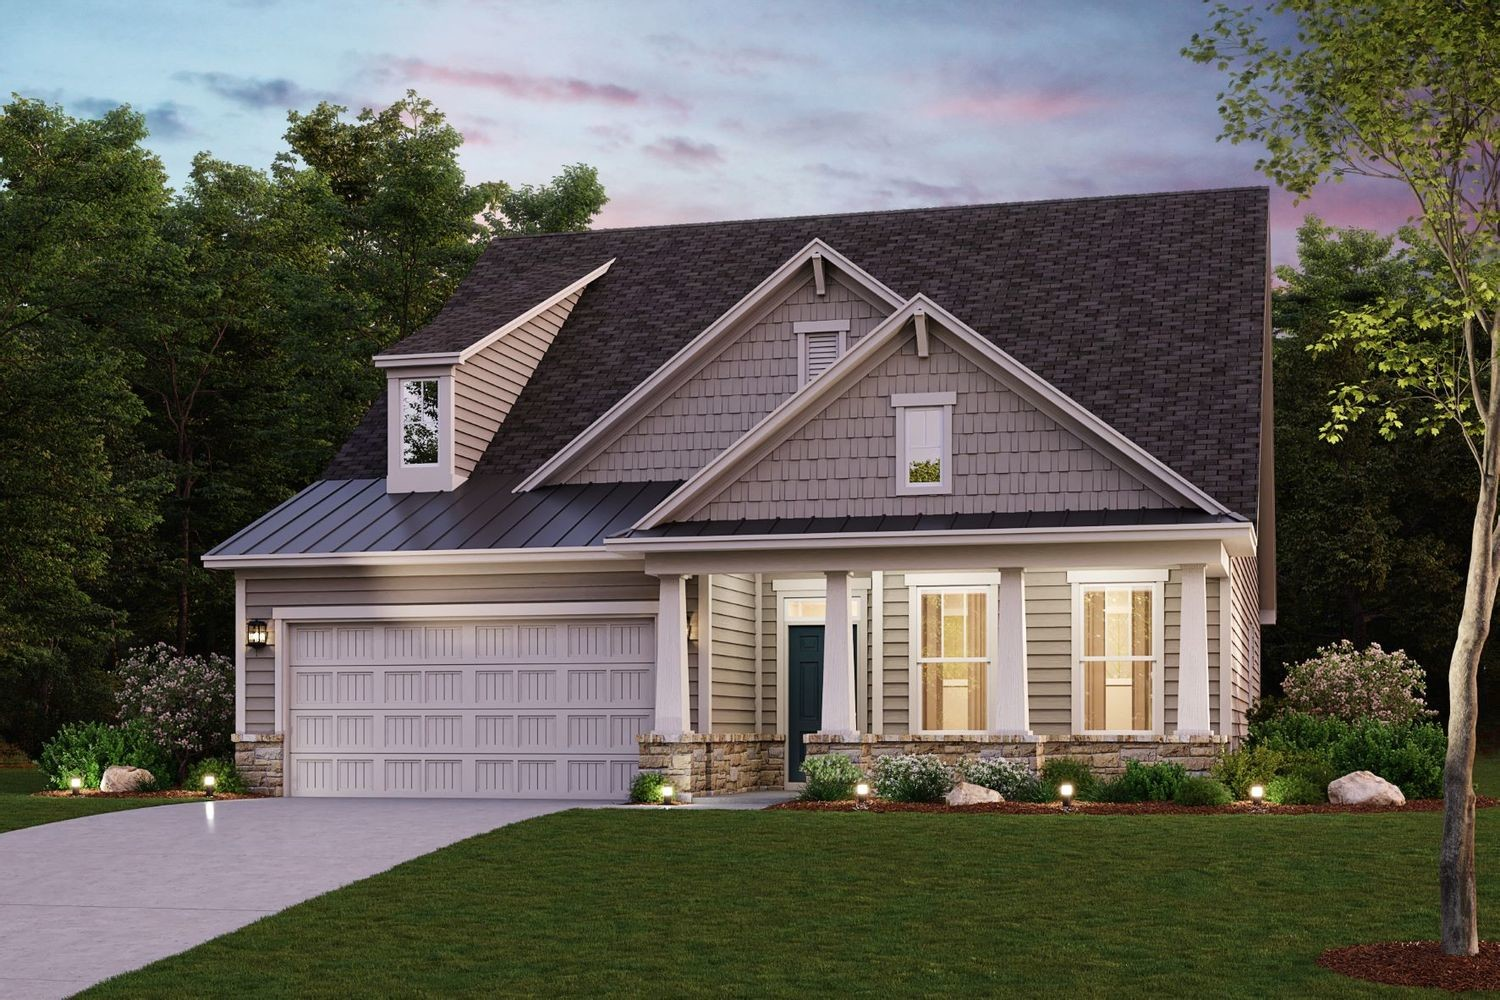 Move In Ready New Home In The Village at Hoschton Community